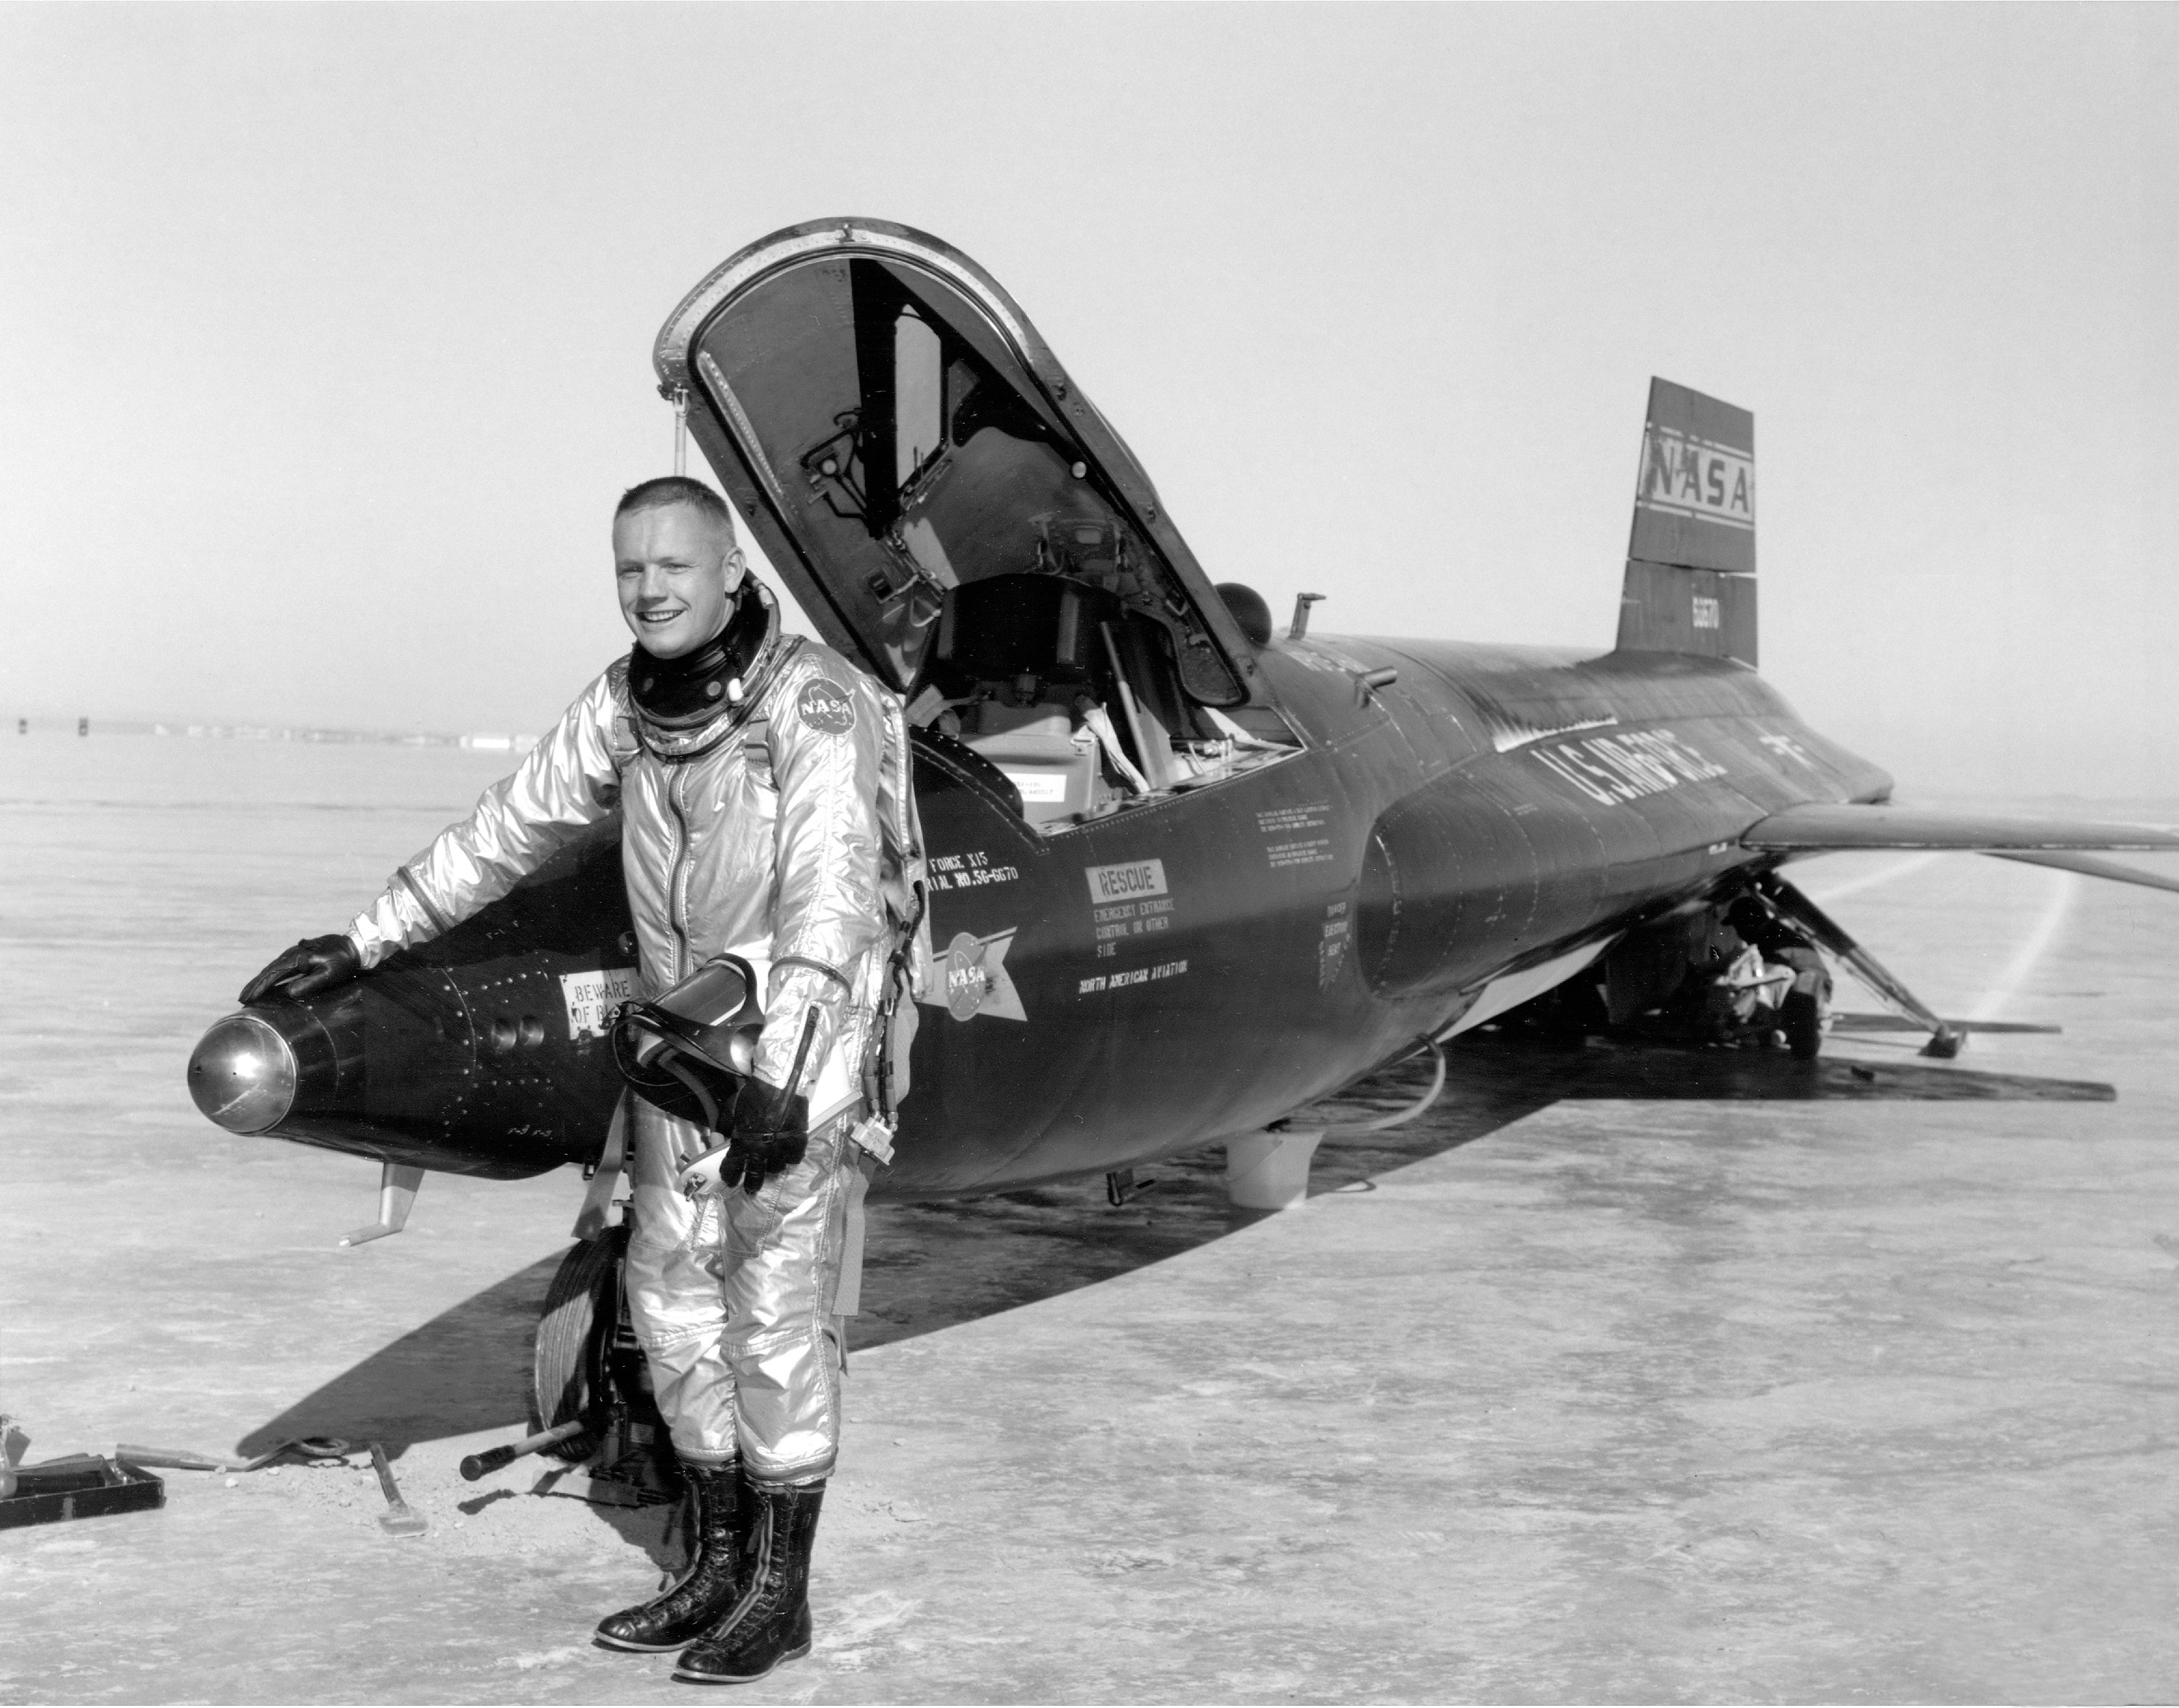 X 15 Rocket Plane Outstanding photos of the X-15